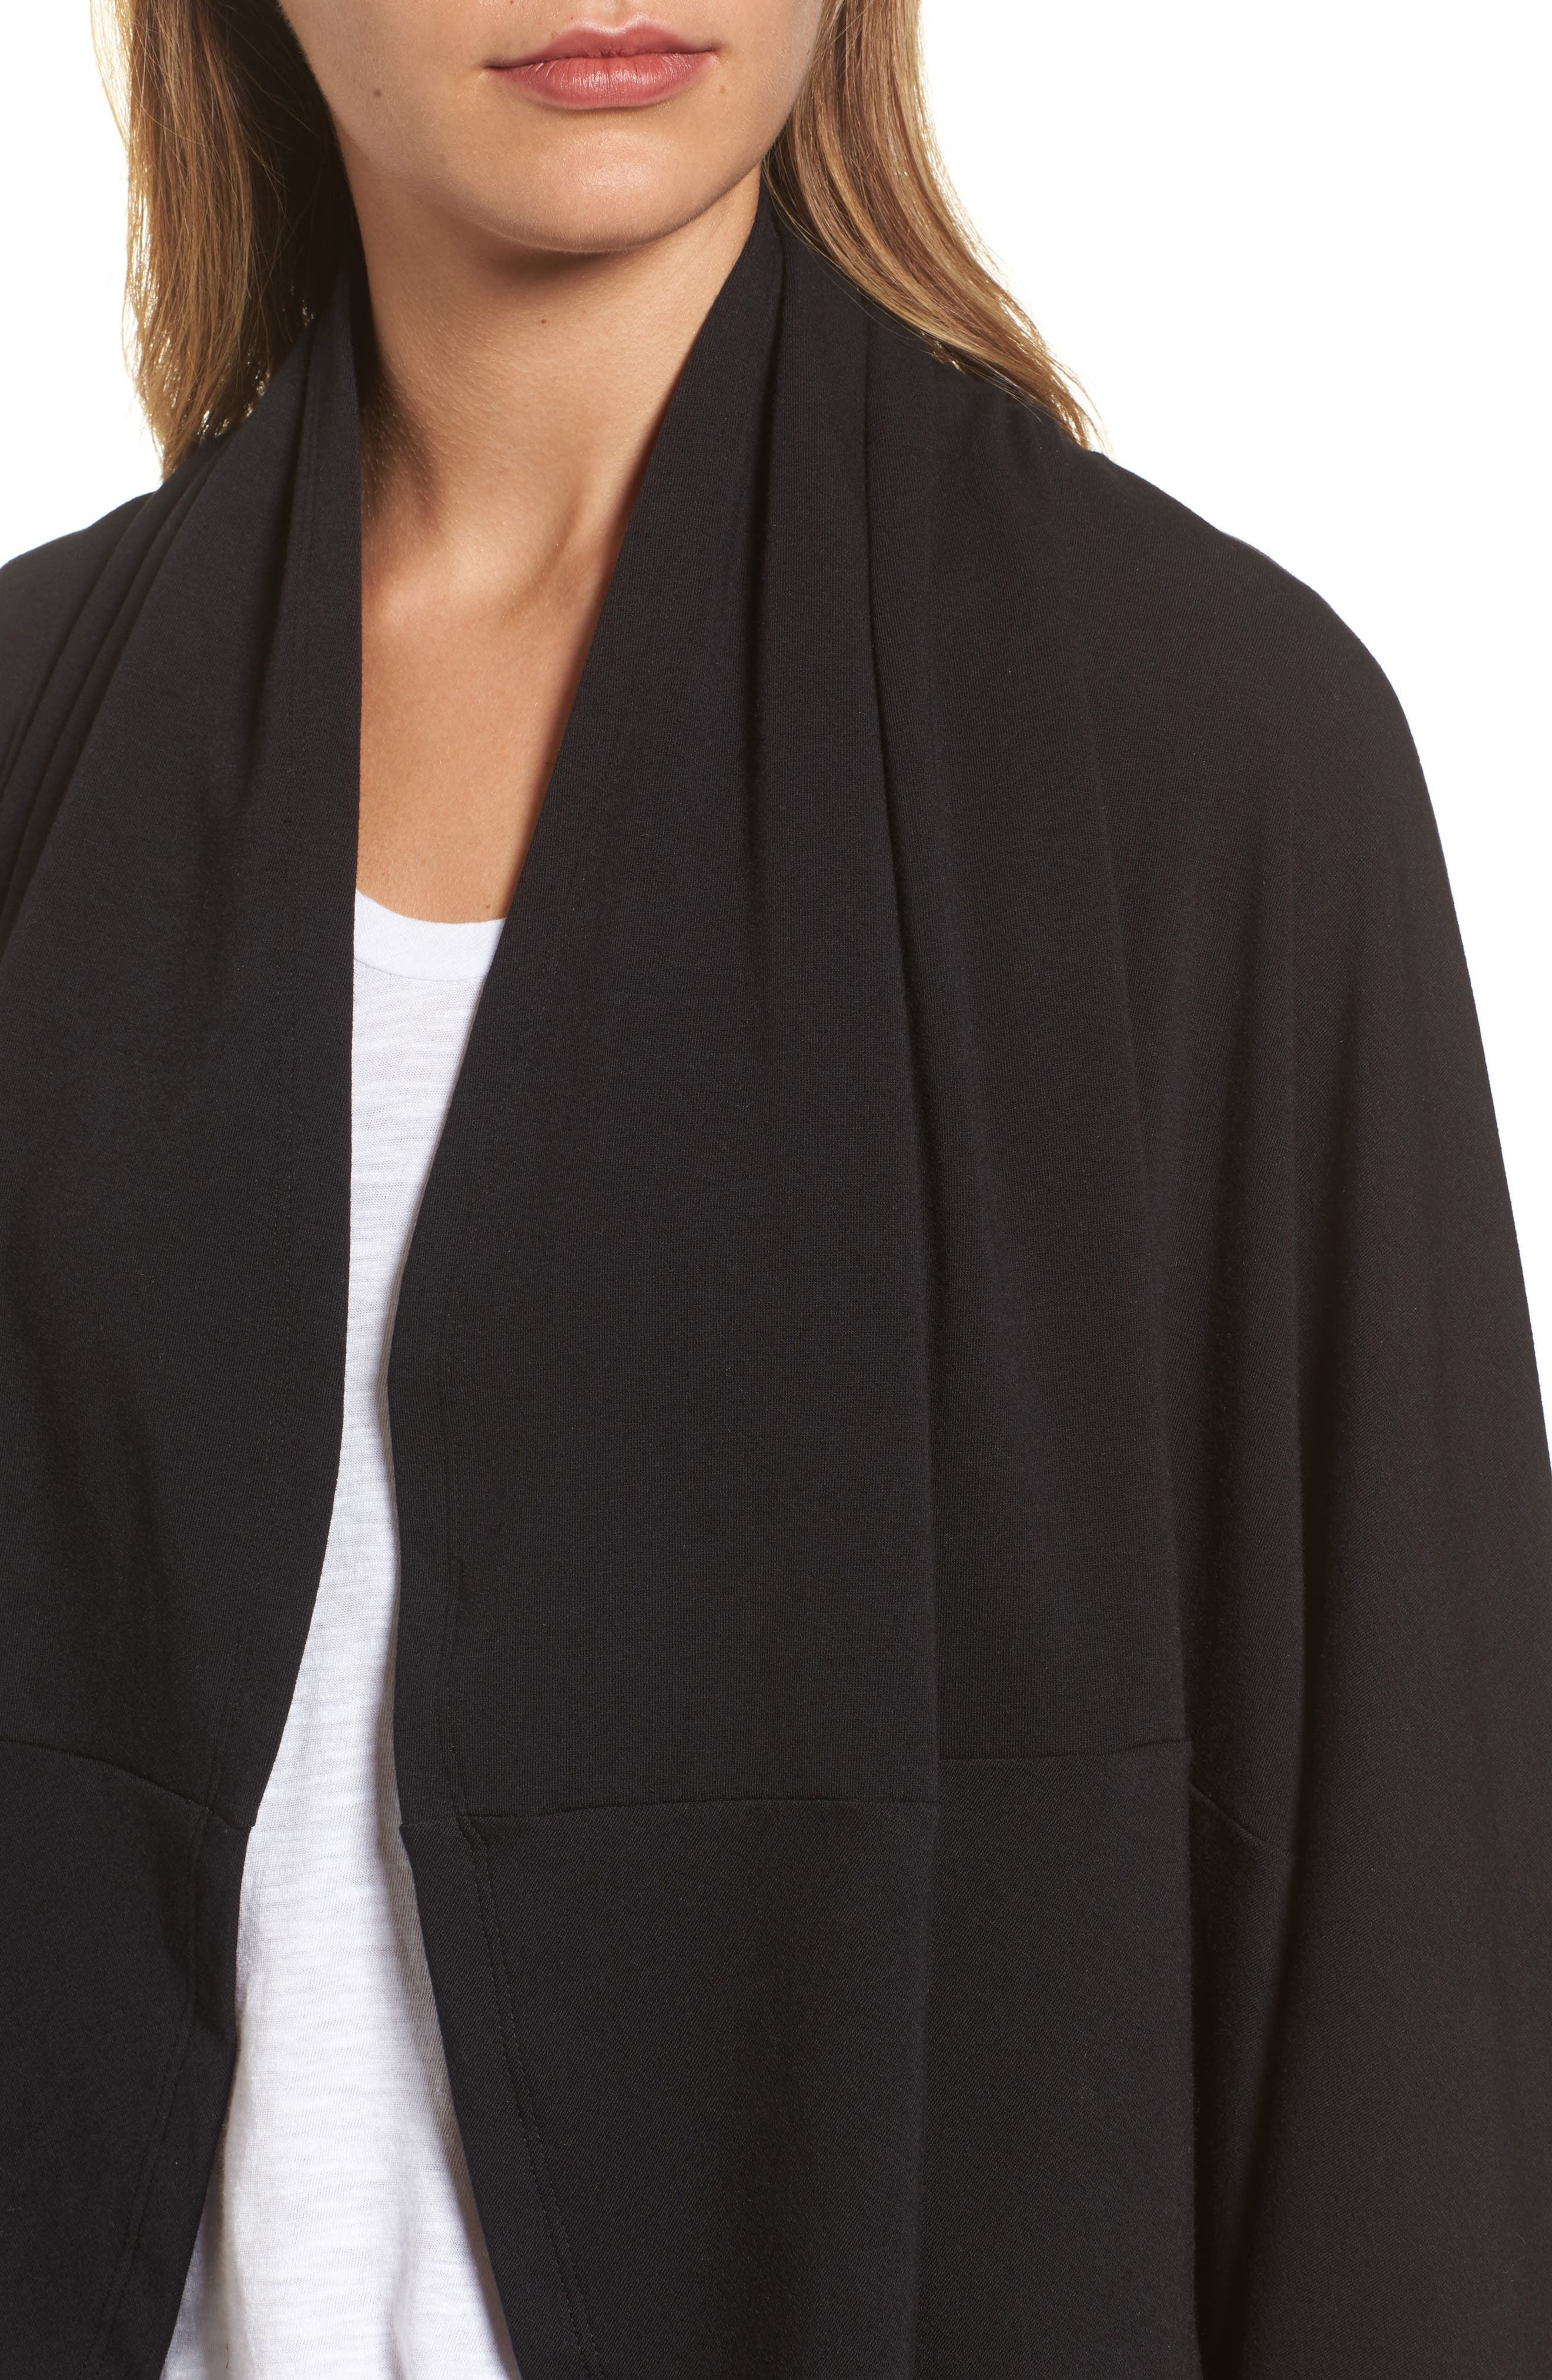 Cocoon Knit Midi Cardigan,                             Alternate thumbnail 4, color,                             Black